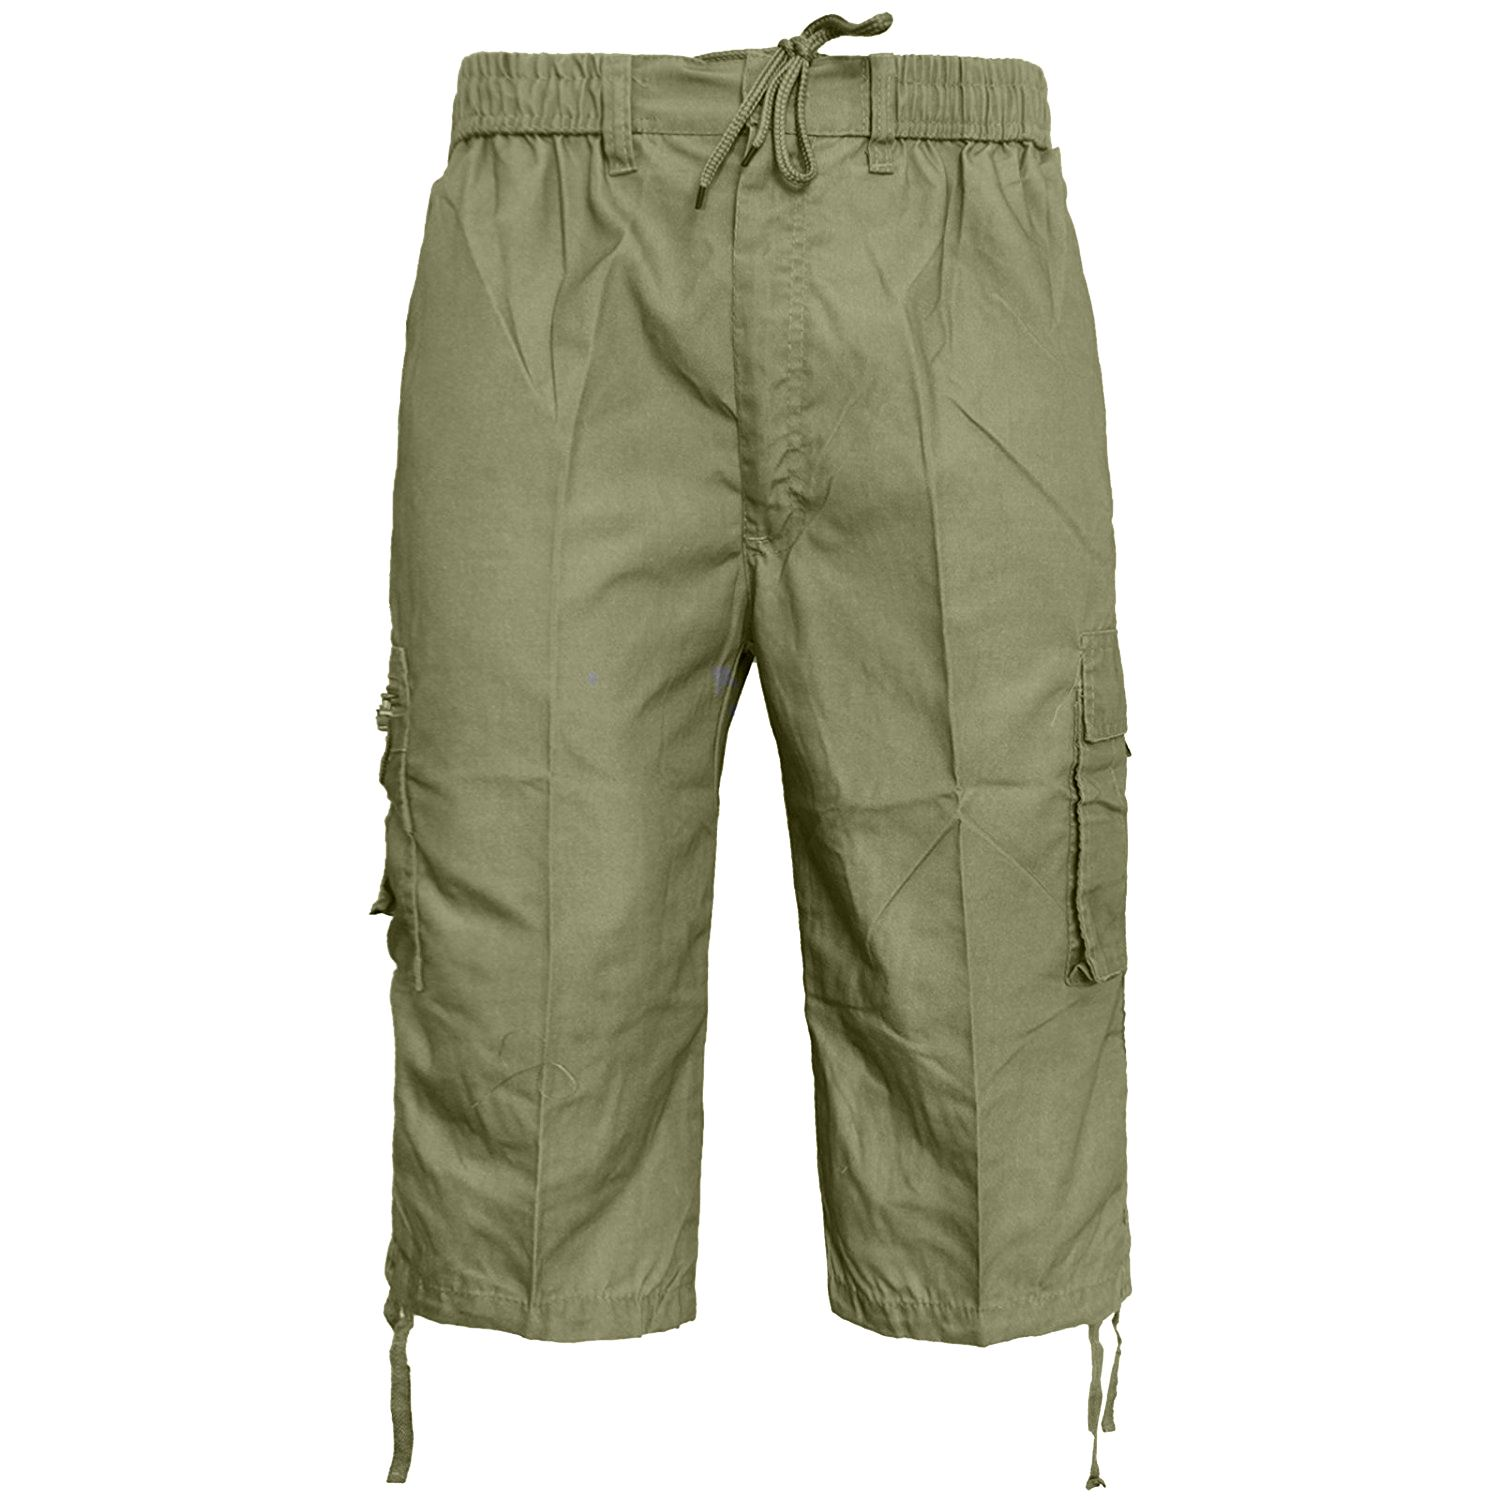 MENS-ELASTICATED-KNEE-LENGTH-OR-3-4-SHORTS-CARGO-COMBAT-MULTI-POCKET-SUMMER-PANT thumbnail 36